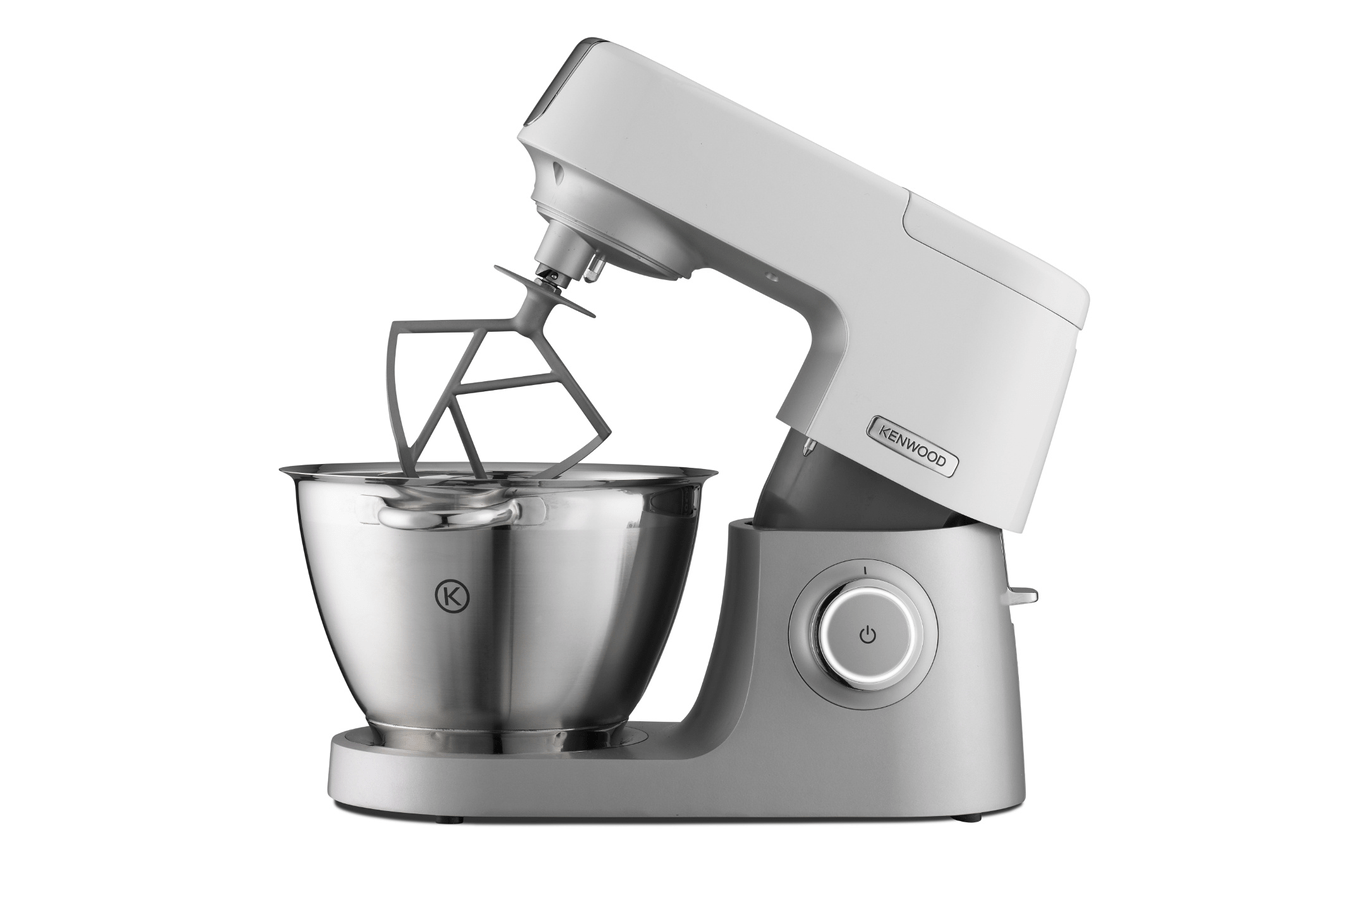 Robot Cuisine Kenwood Robot Patissier Kenwood Kvc5000t Chef Sense 4047648 Darty